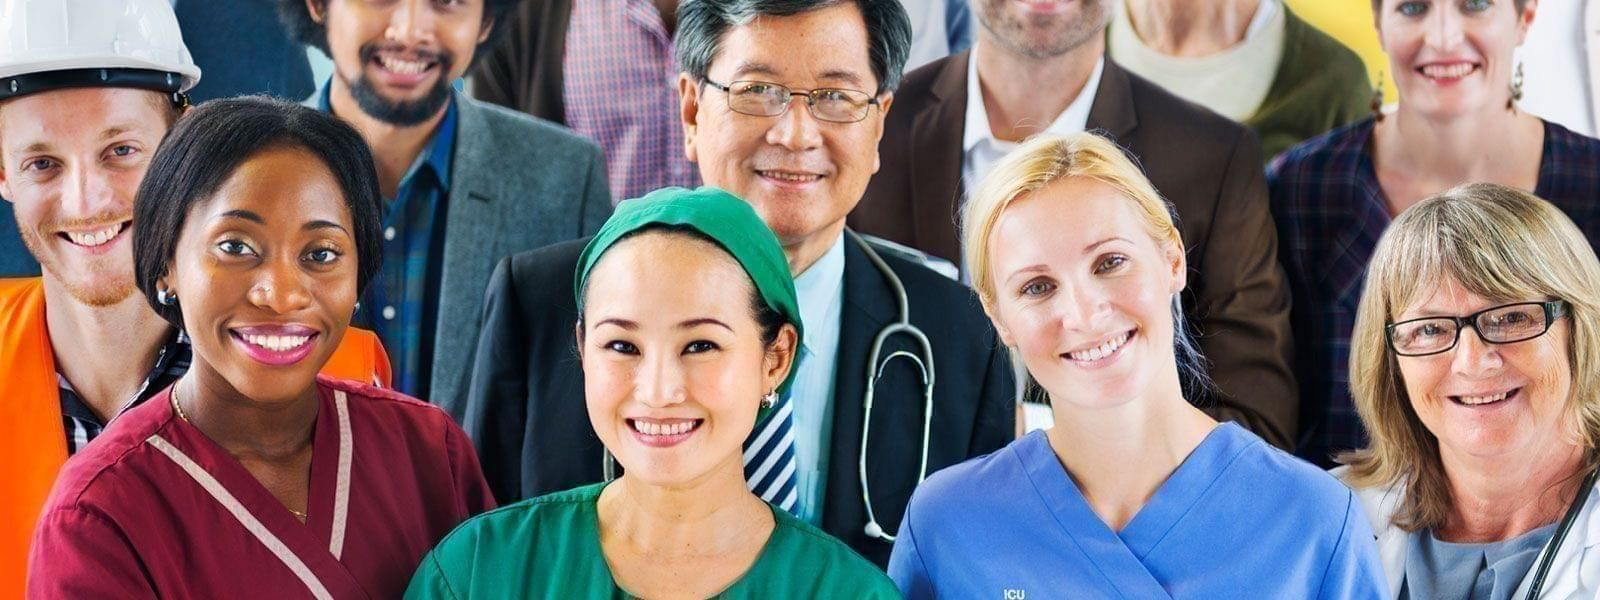 Occupational Health - What Is the BIG Picture of OH?